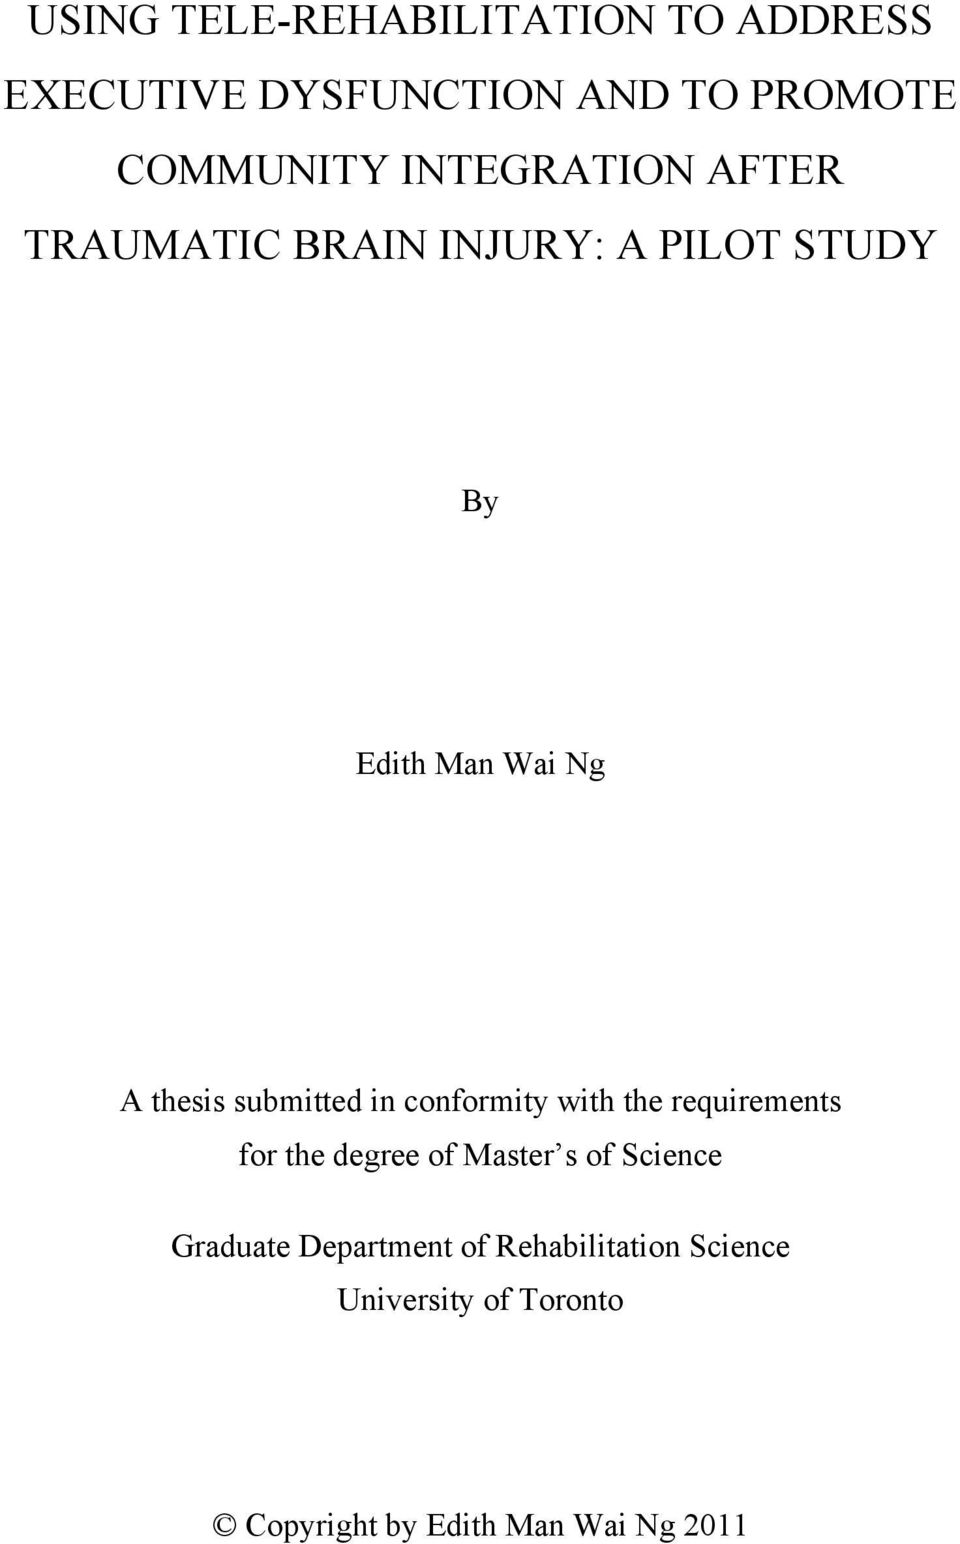 submitted in conformity with the requirements for the degree of Master s of Science